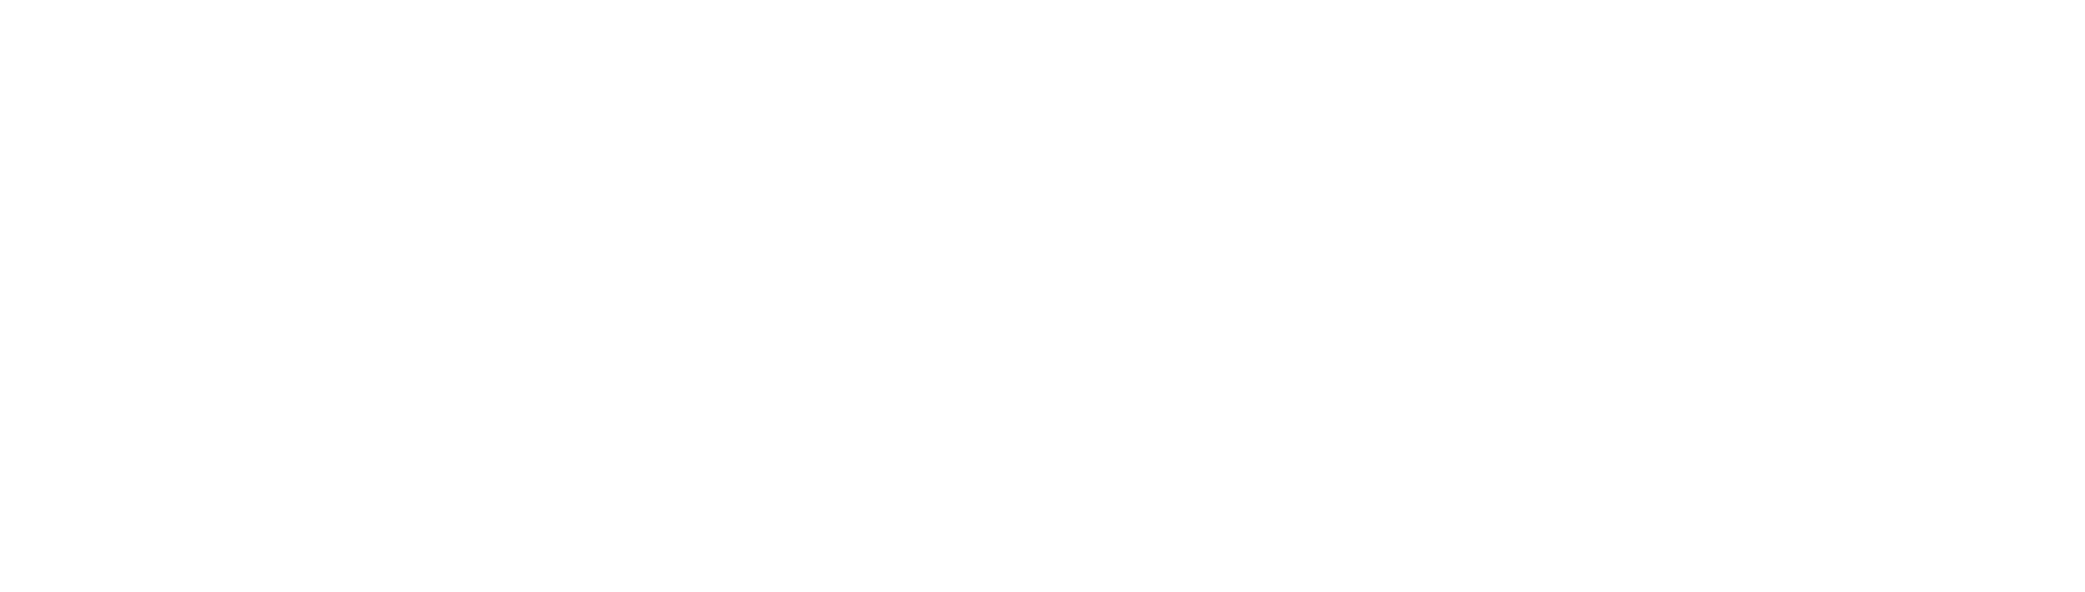 OSHA, Certified Arborist, International Society of Arborists